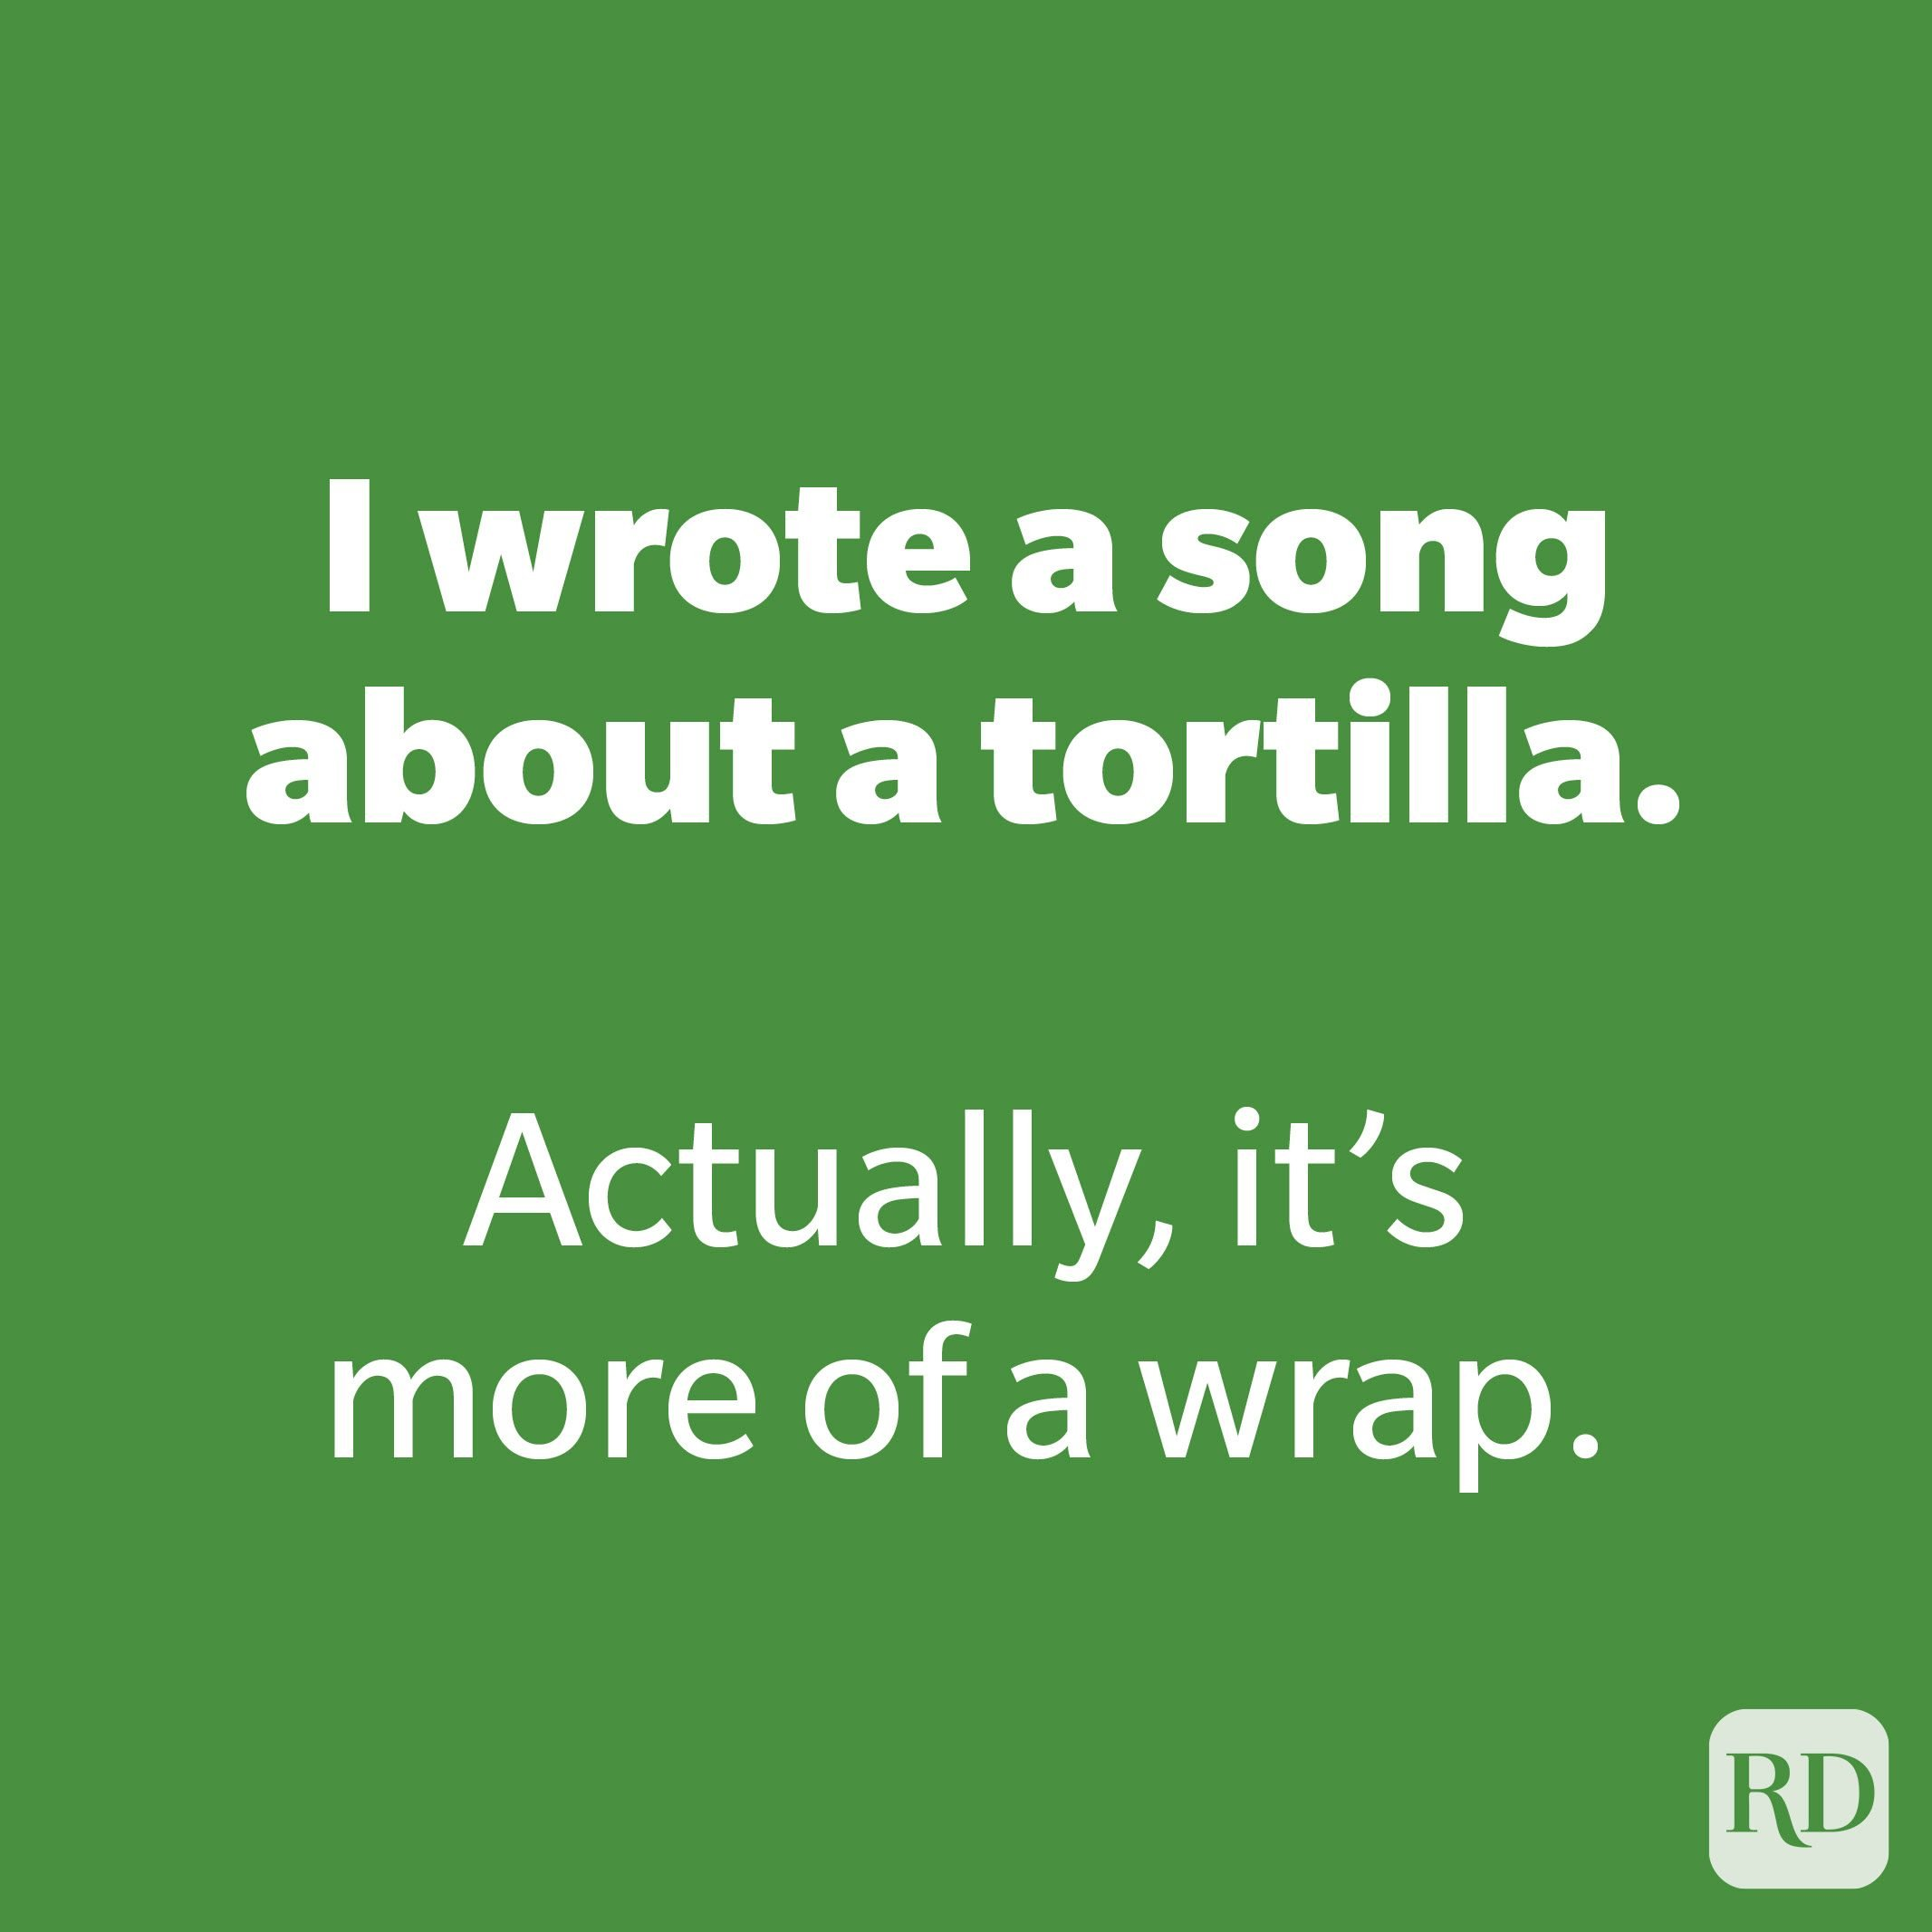 I wrote a song about a tortilla.